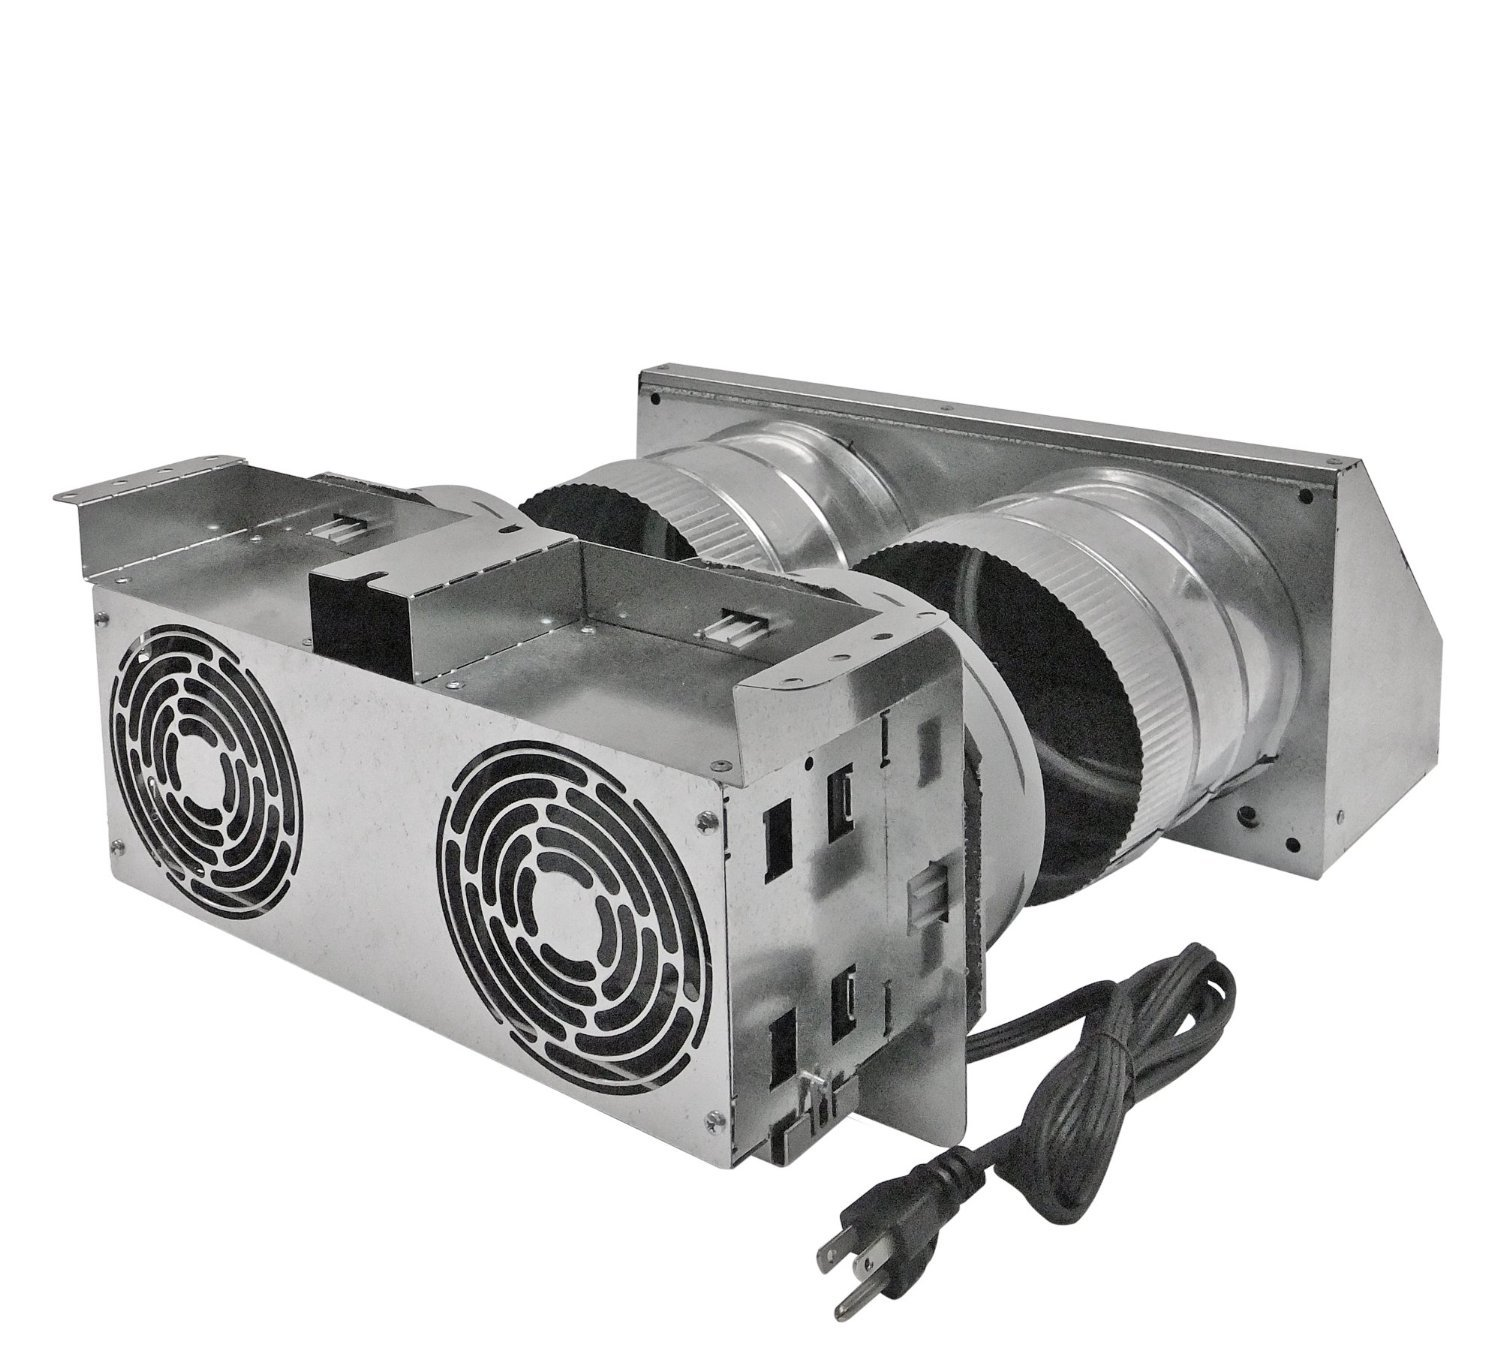 Amazon.com Tjernlund X2D Model Products Xchanger Reversible Basement Fans Industrial u0026 Scientific  sc 1 st  Amazon.com & Amazon.com: Tjernlund X2D Model Products Xchanger Reversible ...